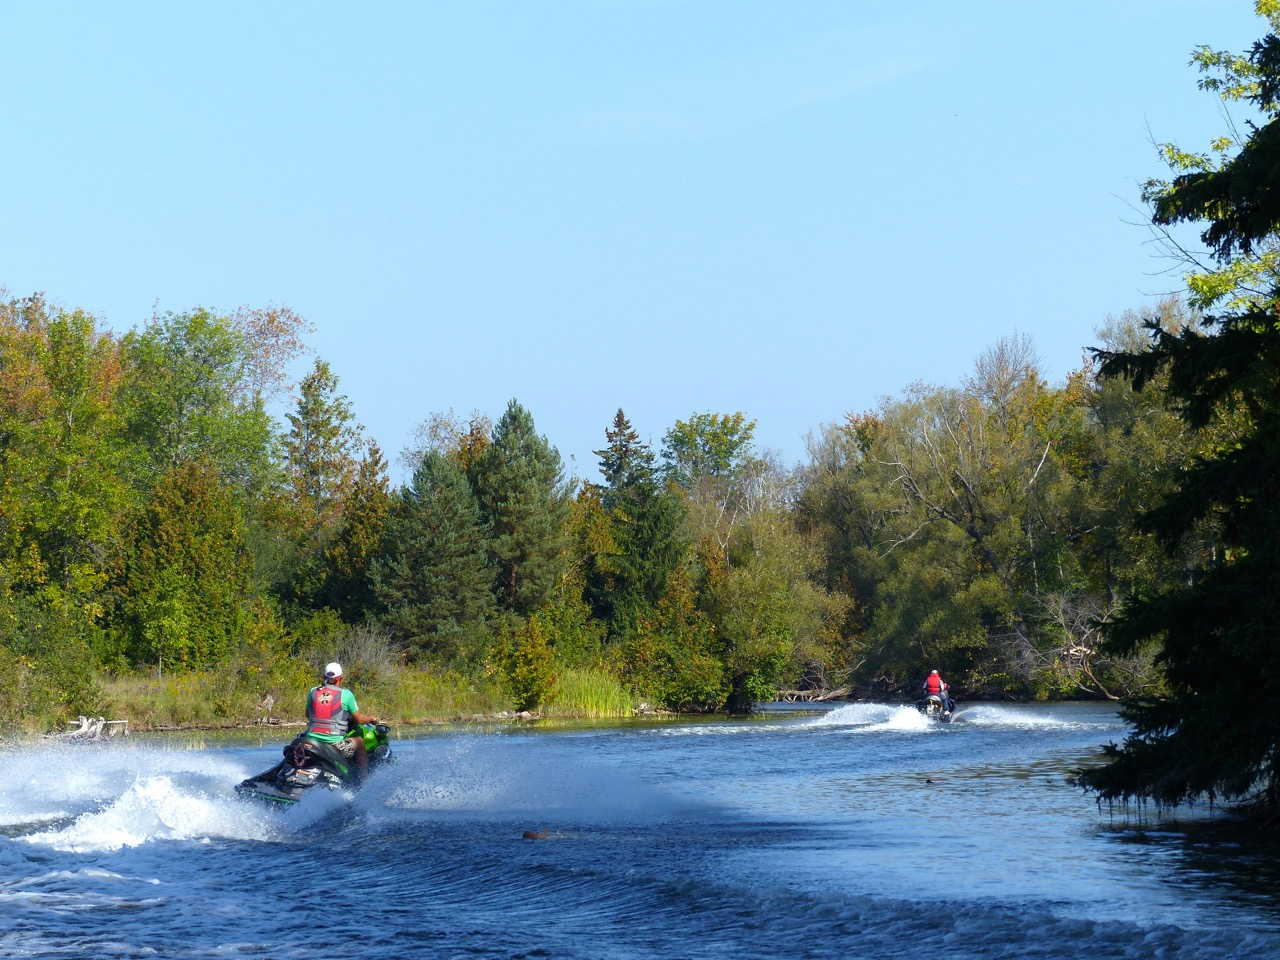 Shoreline speed restrictions are part of Ontario PWC boating regs